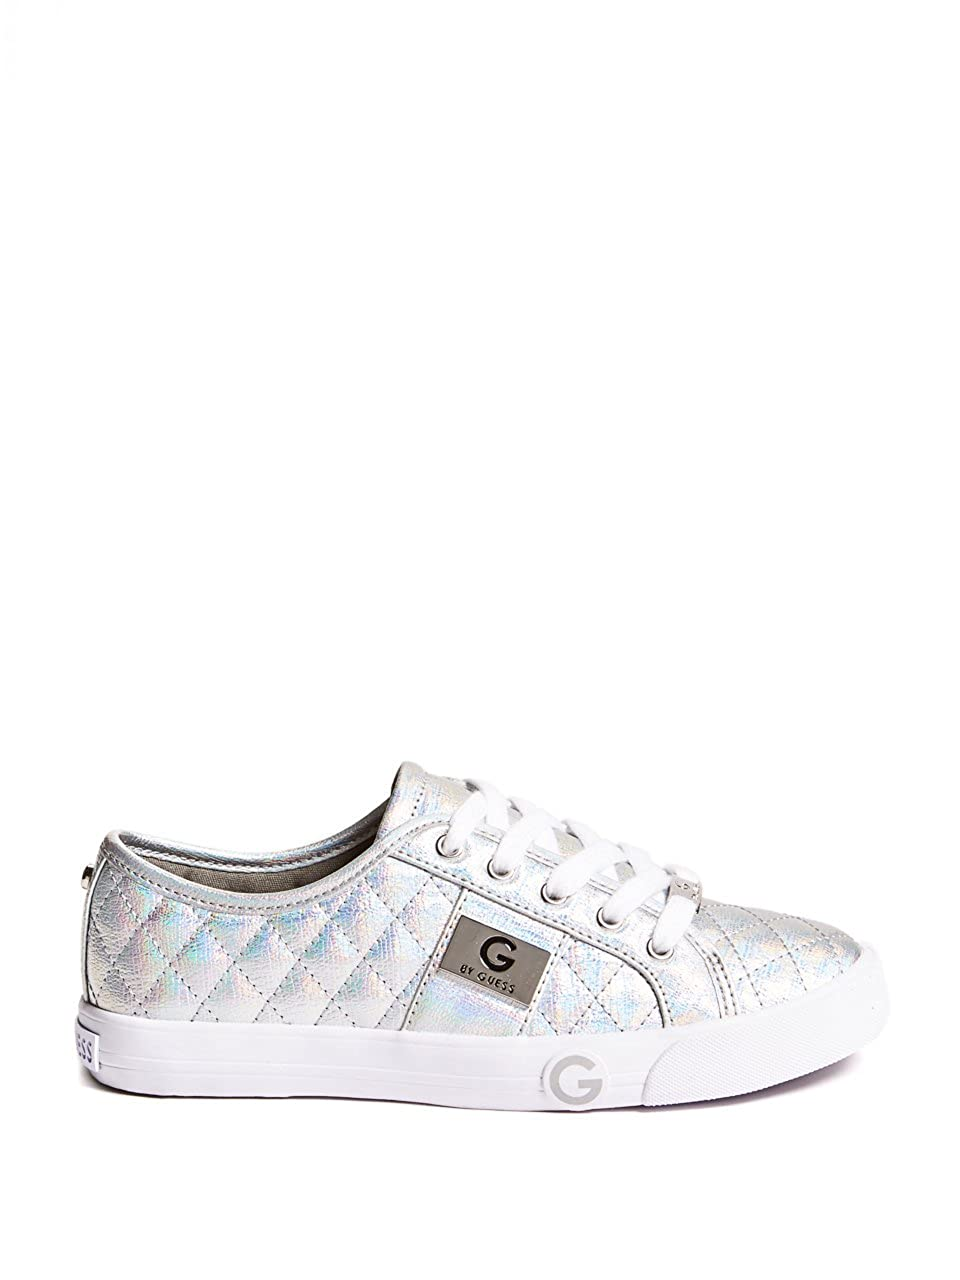 By Guess Byrone Hologram 7 at Amazon